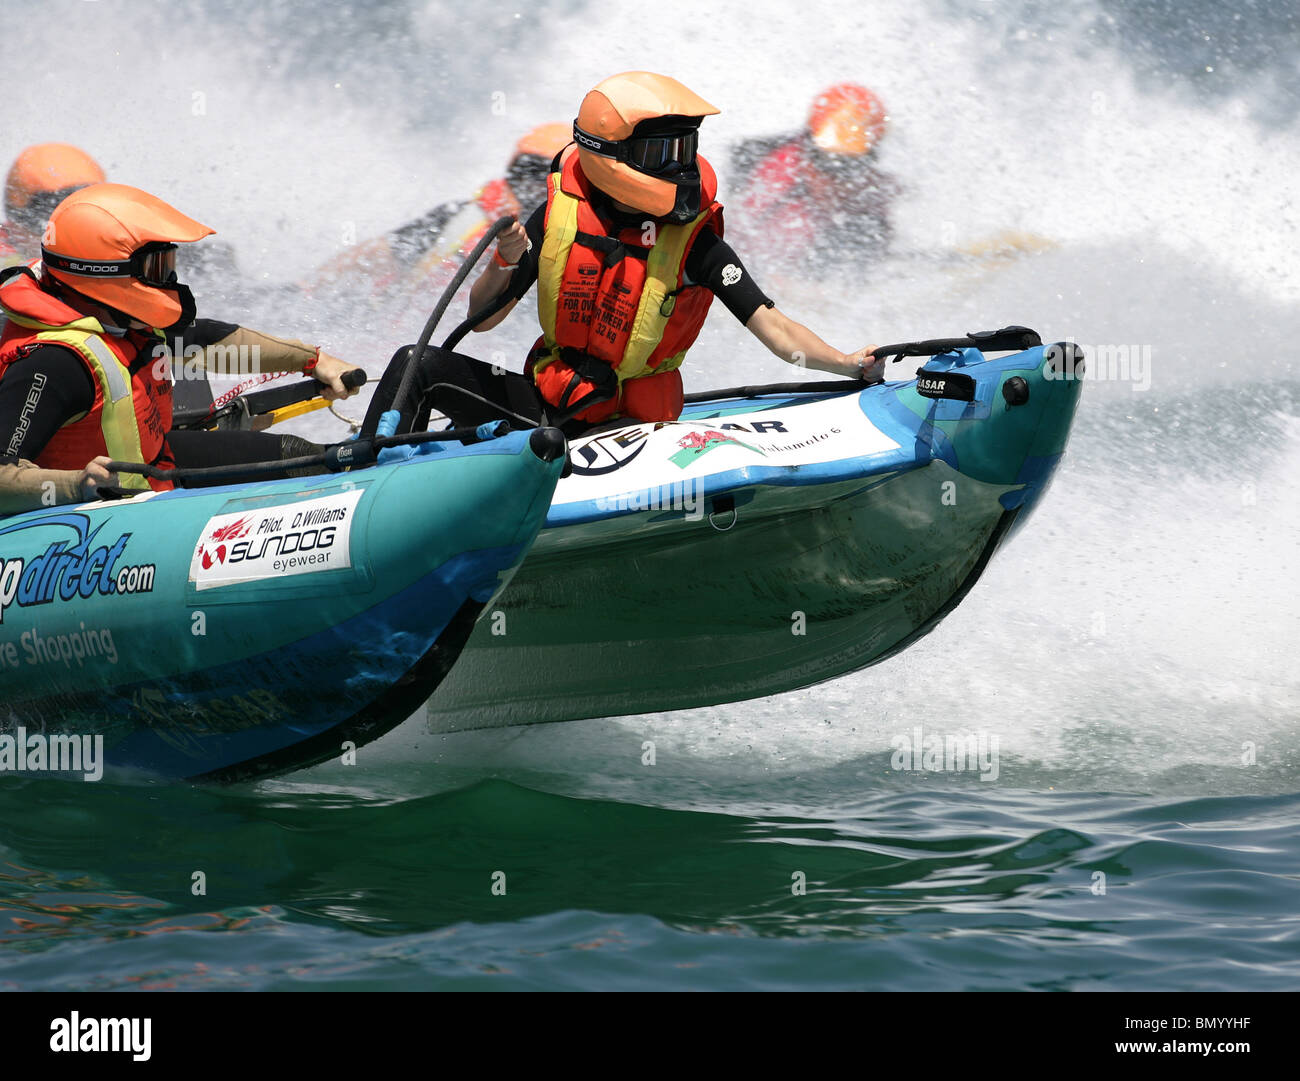 Powerboat P1 Grand Prix of Malta. Thundercat Racing. - Stock Image